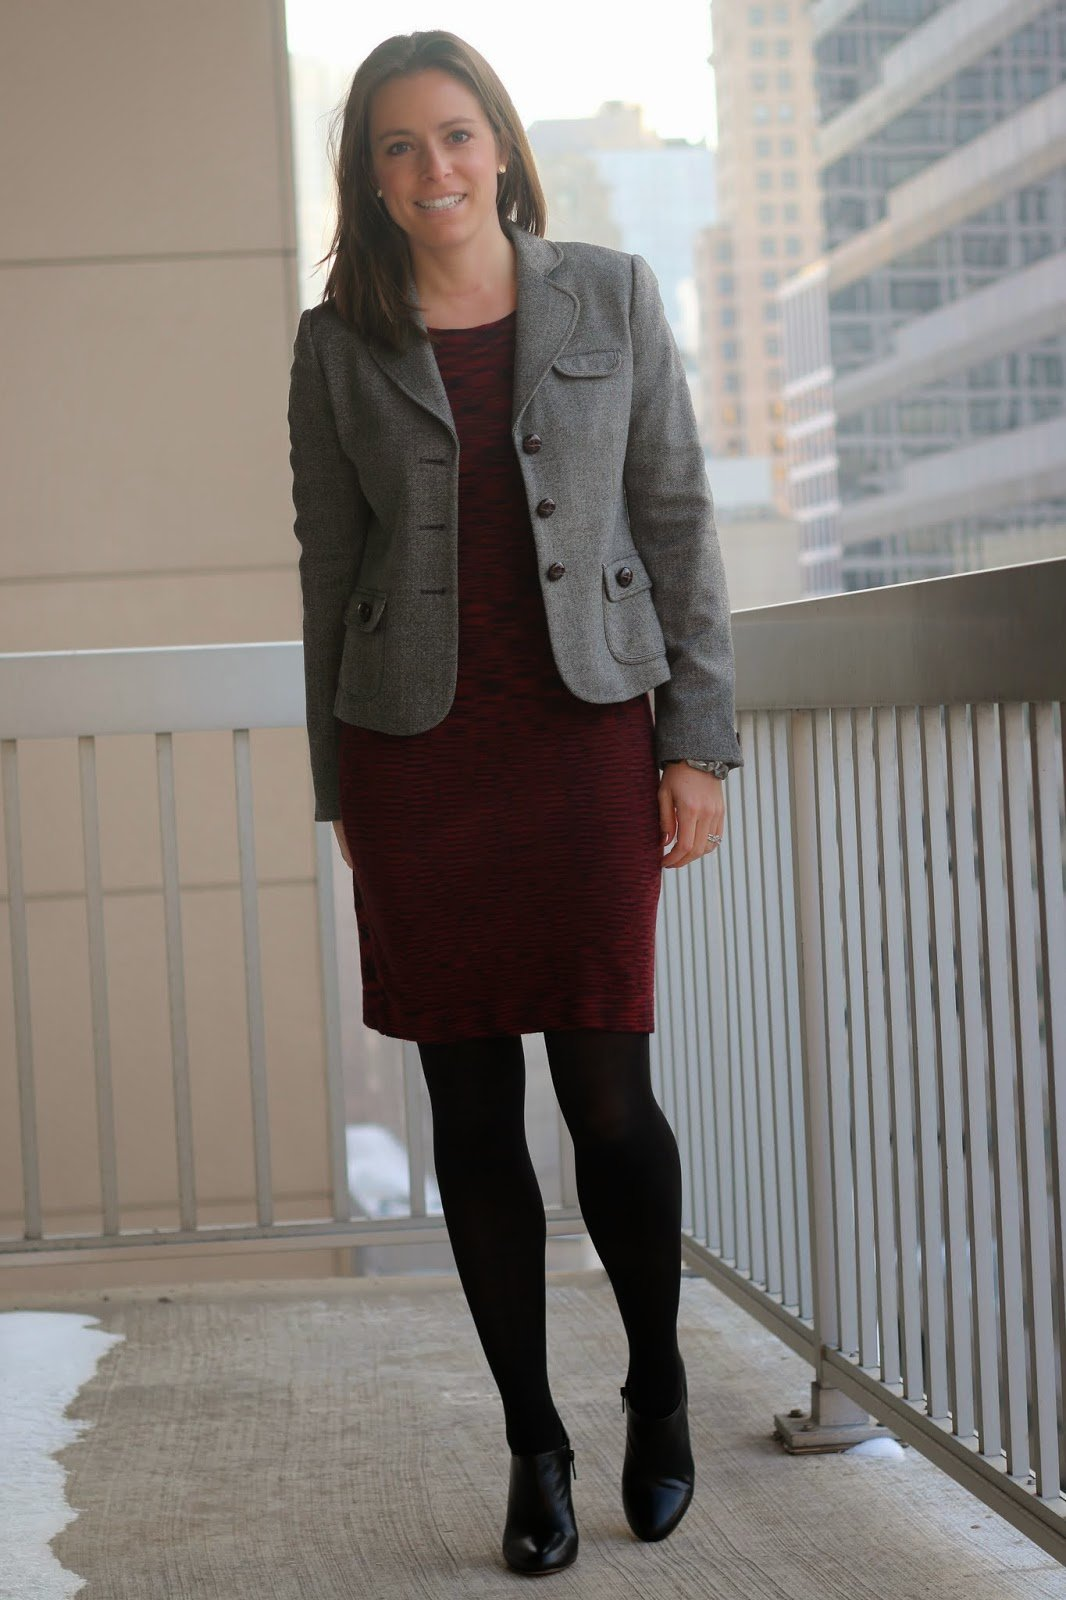 FashionablyEmployed.com   Valentine's Day Style: Desk to Dinner Date   Red sweater dress, black tights and booties, gray moto jacket or gray blazer   work to weekend style